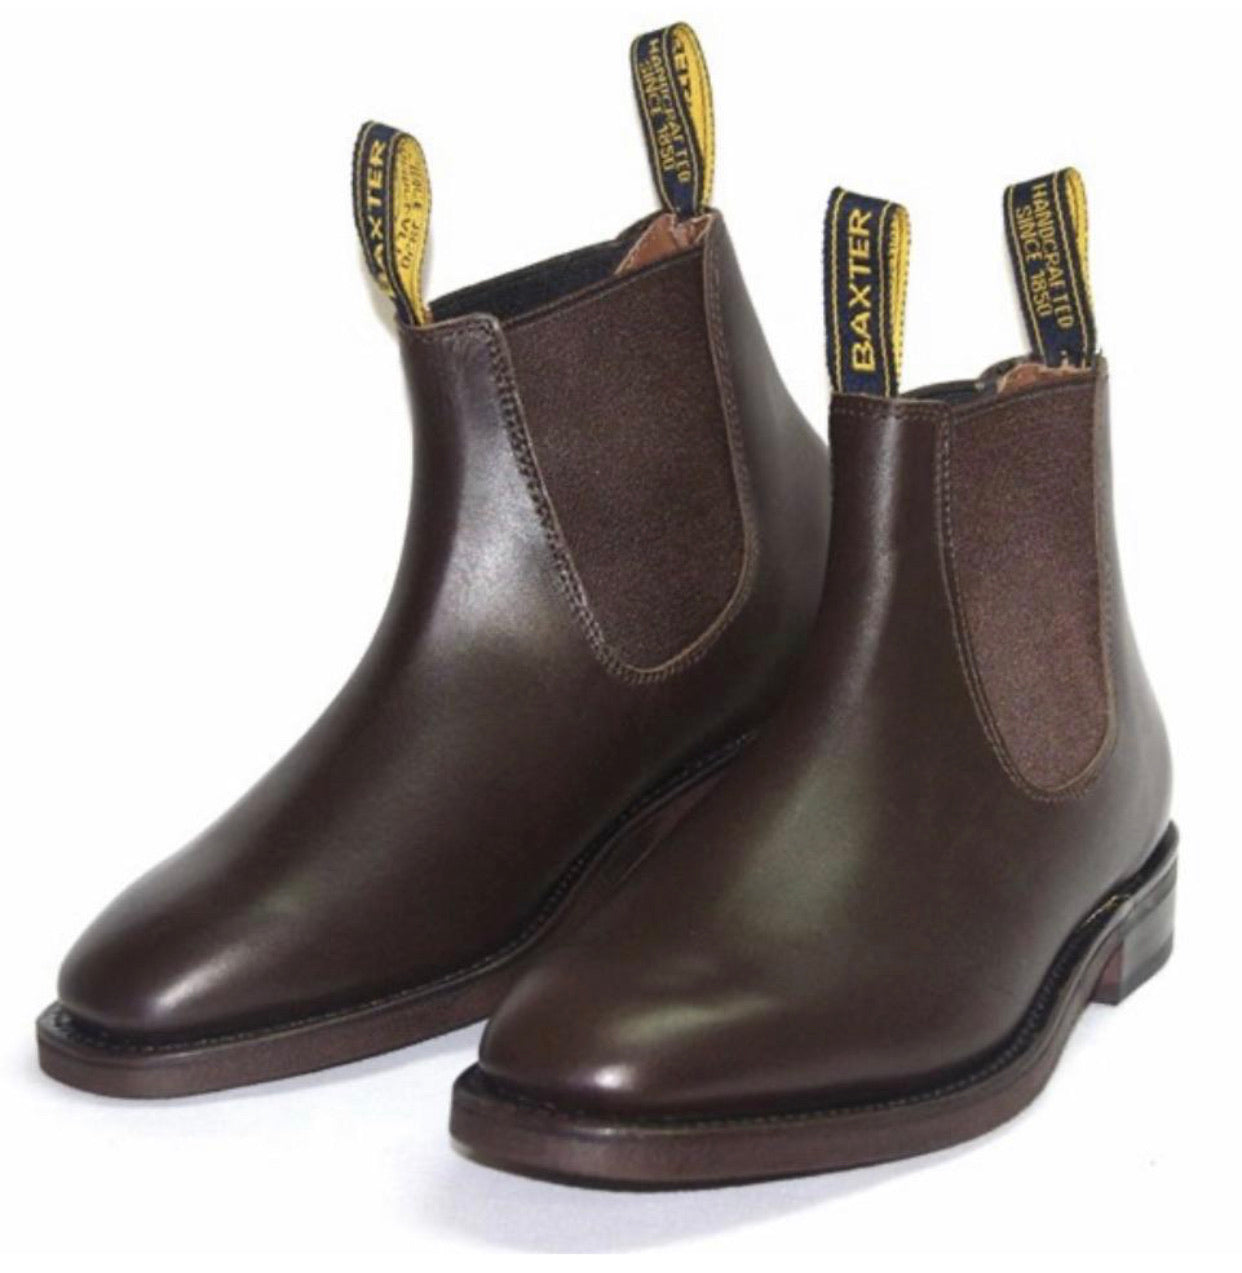 Baxter Saddler Walnut Brown One Piece Leather Rubber Sole Chelsea Boot Made In Australia